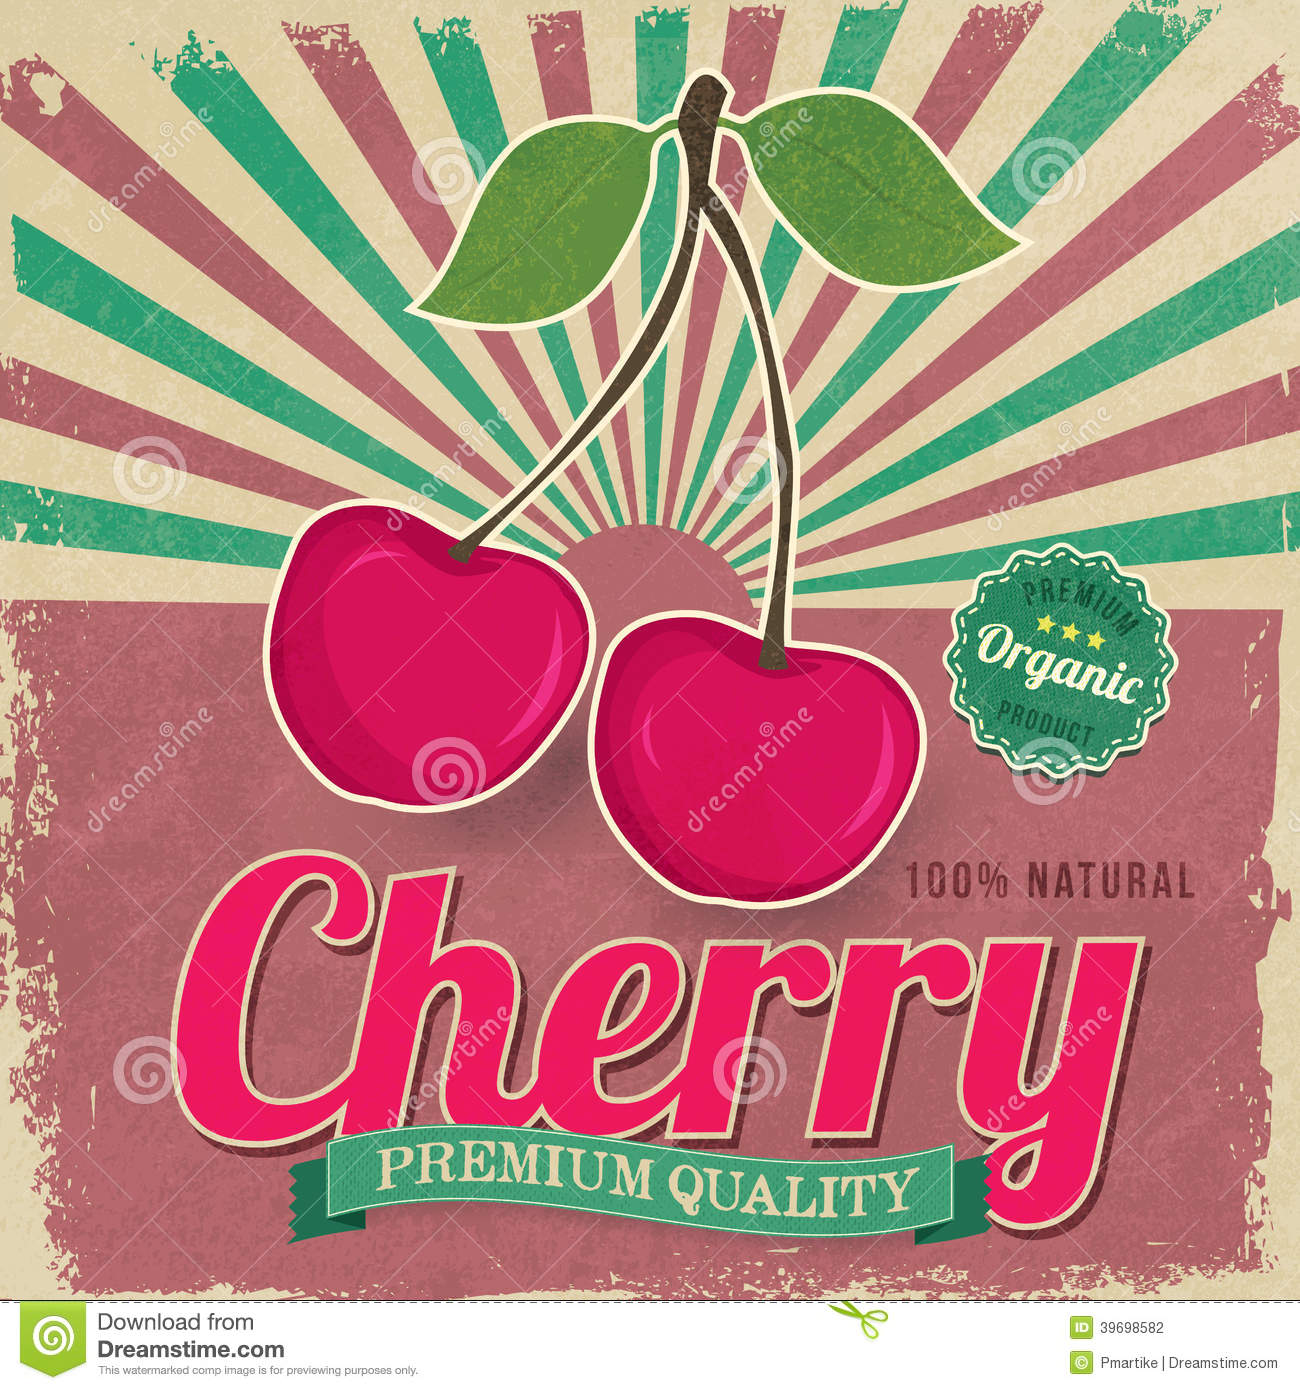 Colorful Vintage Cherry Label Poster Vector Stock Vector - Image ...